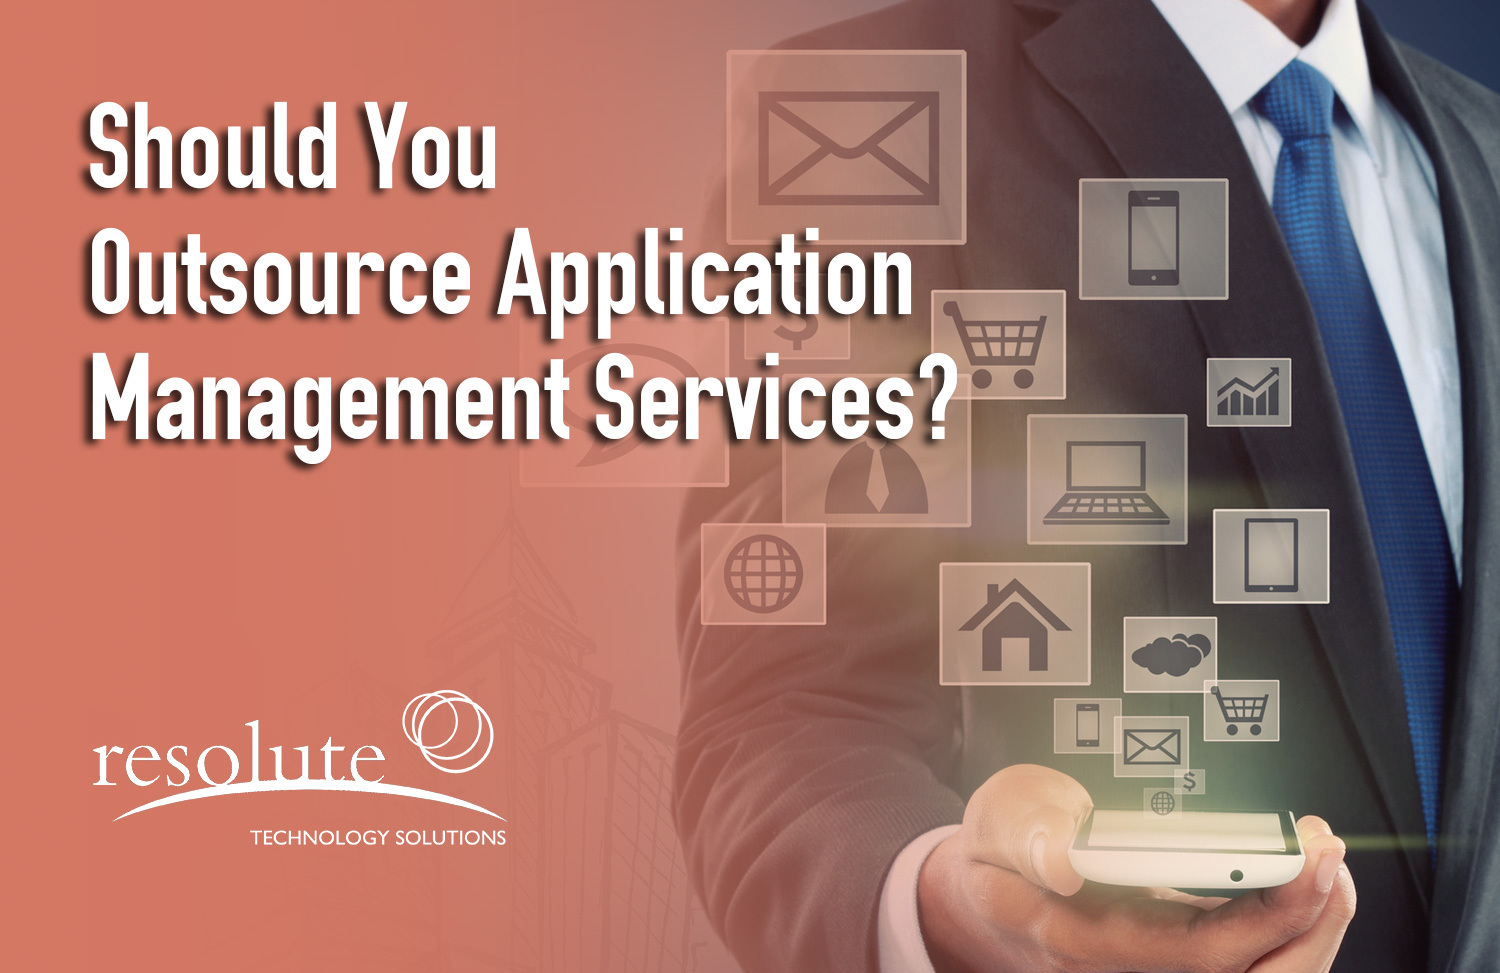 Should You Outsource Application Management Services?